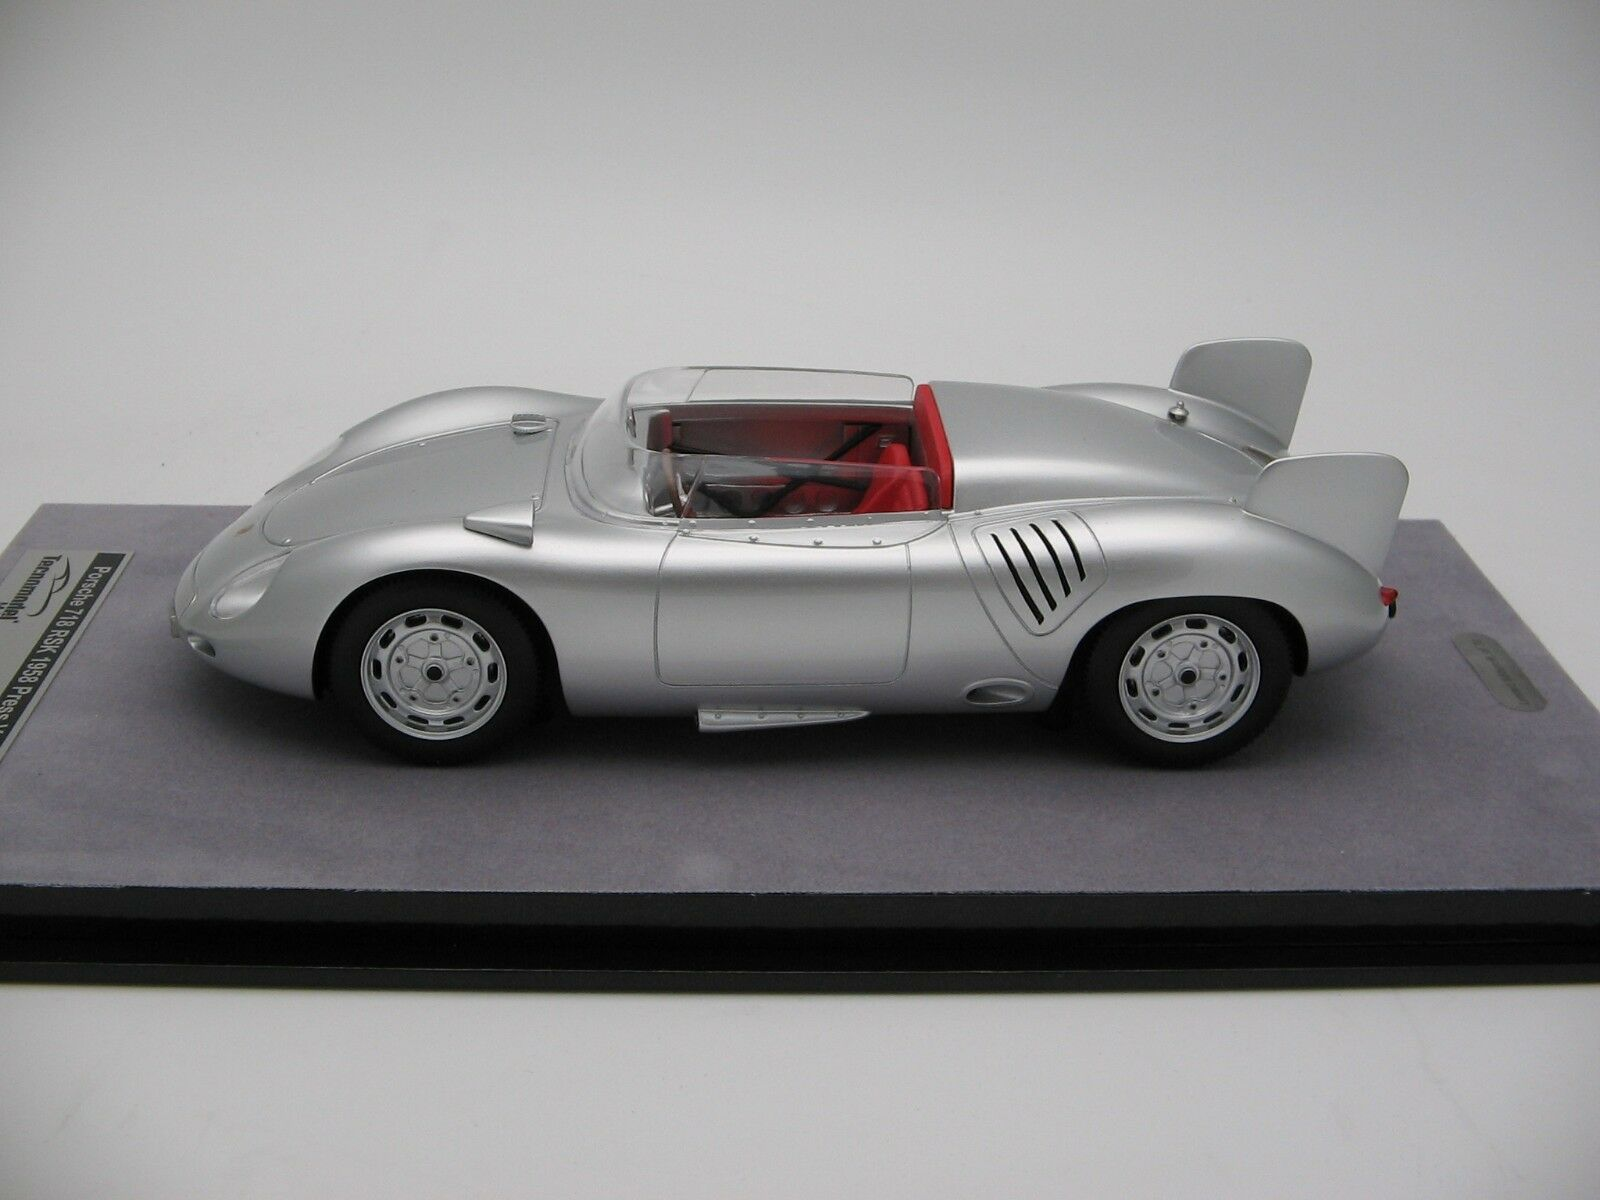 1//18 Scale Tecnomodel Porsche 718 Rsk Press Version 1958 TM18-82E